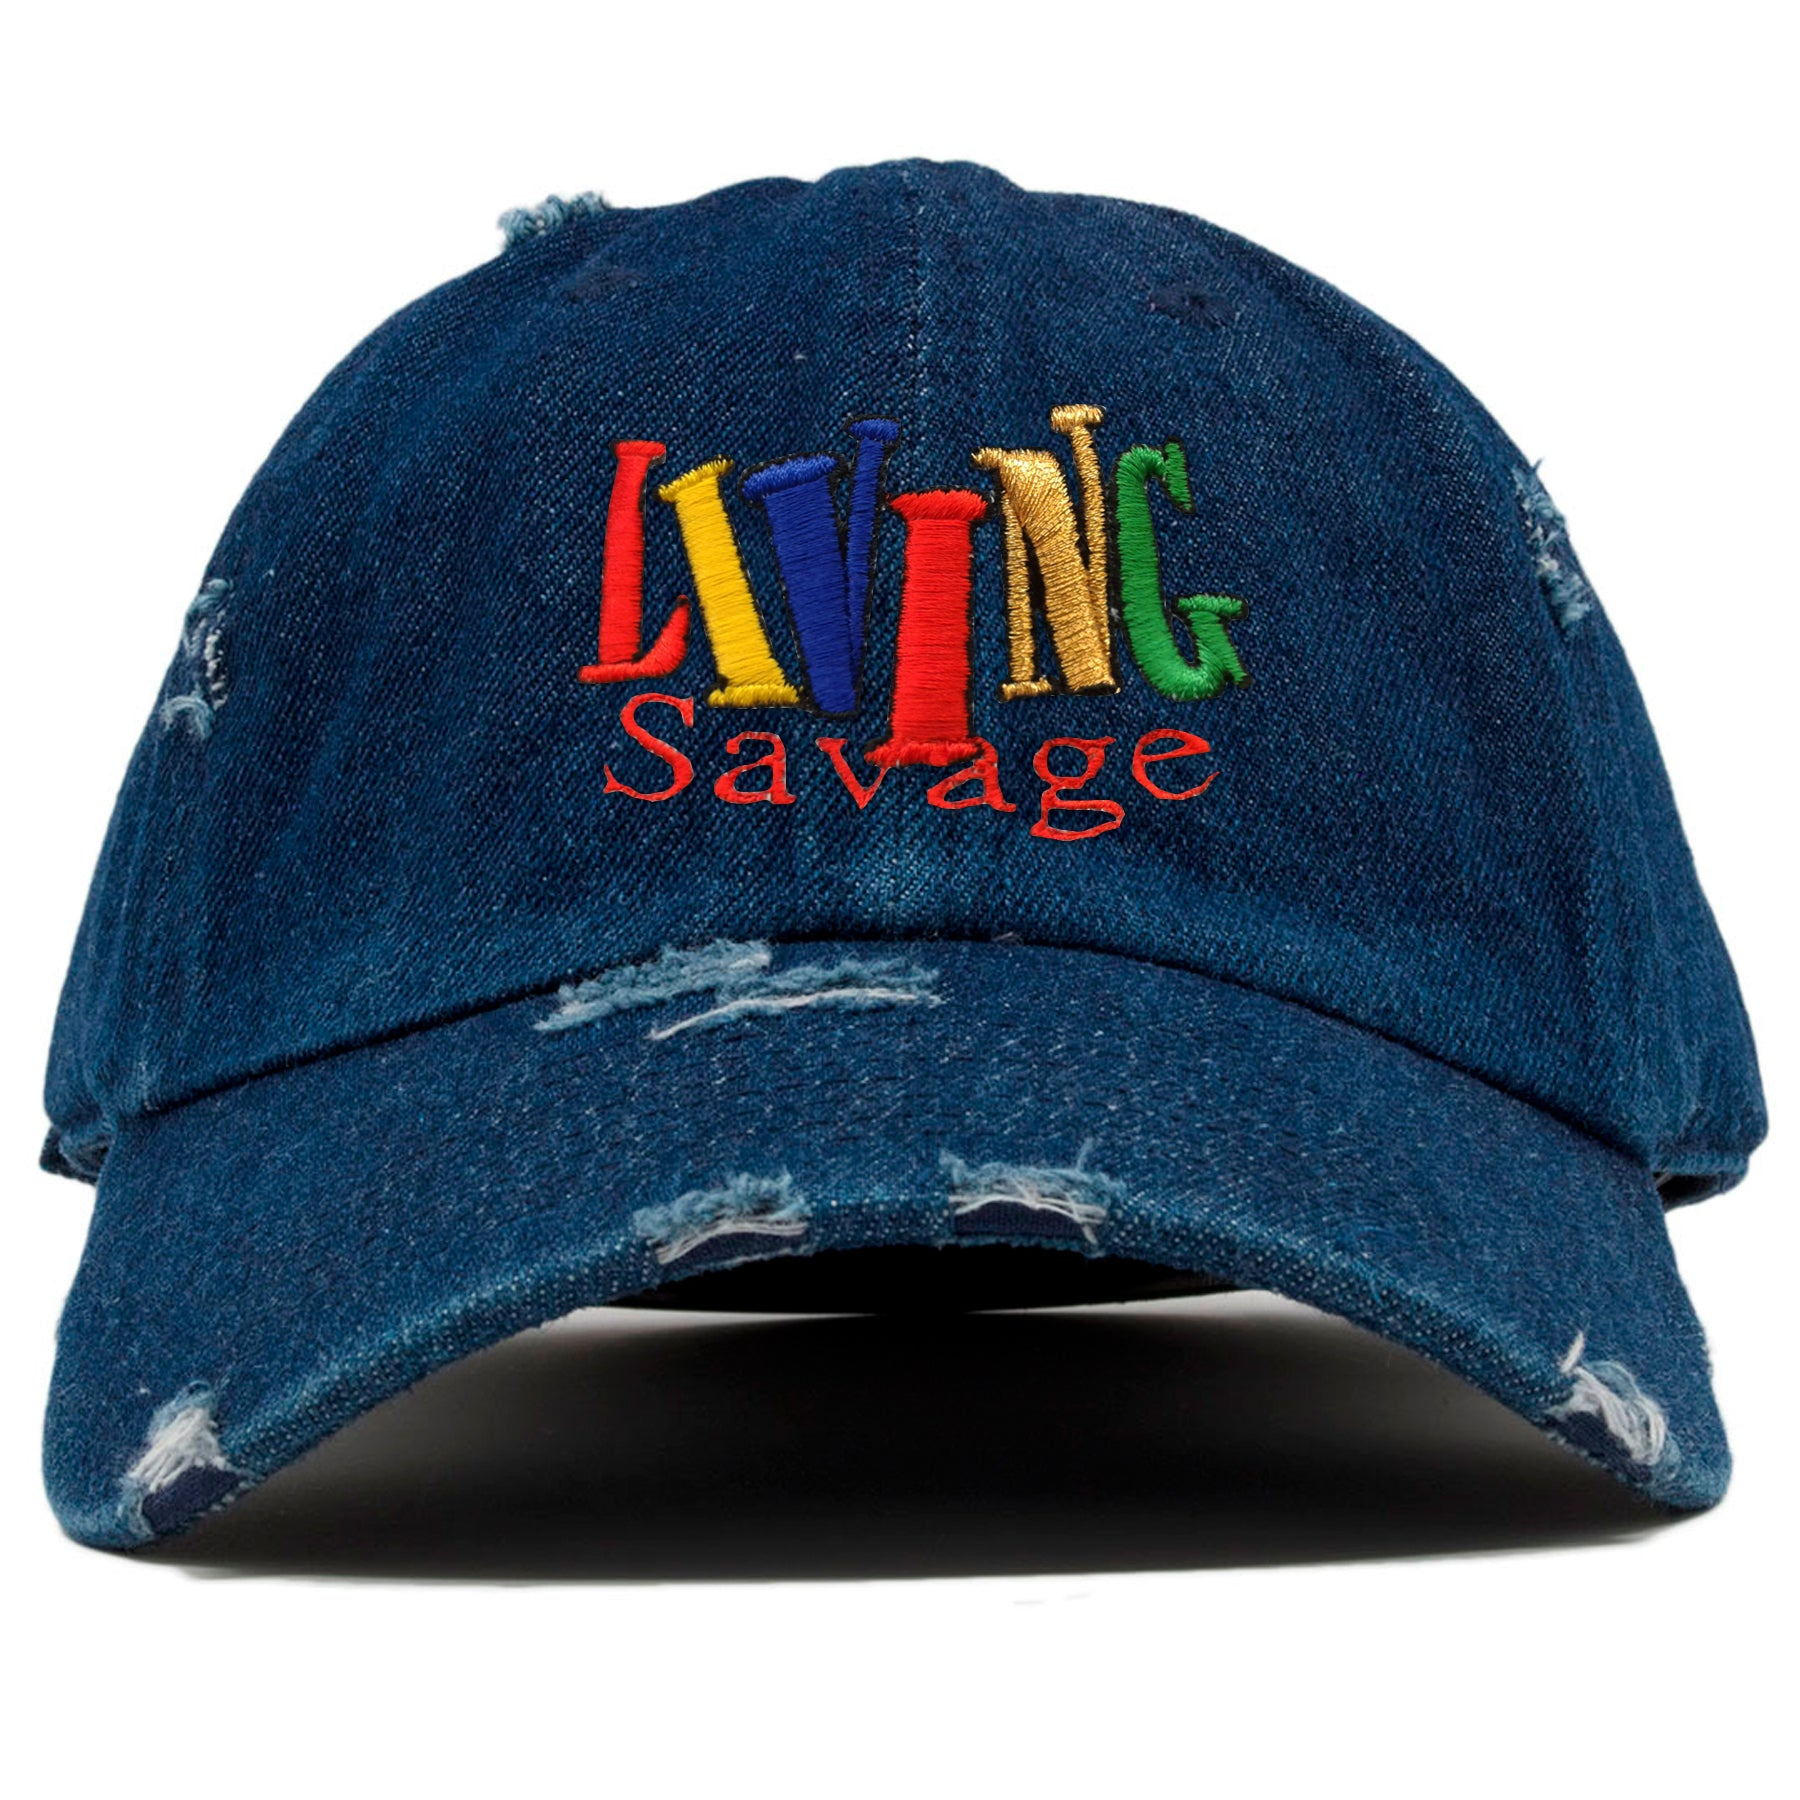 the front of the living savage dad hat has the living savage logo  embroidered 9783dcd677d